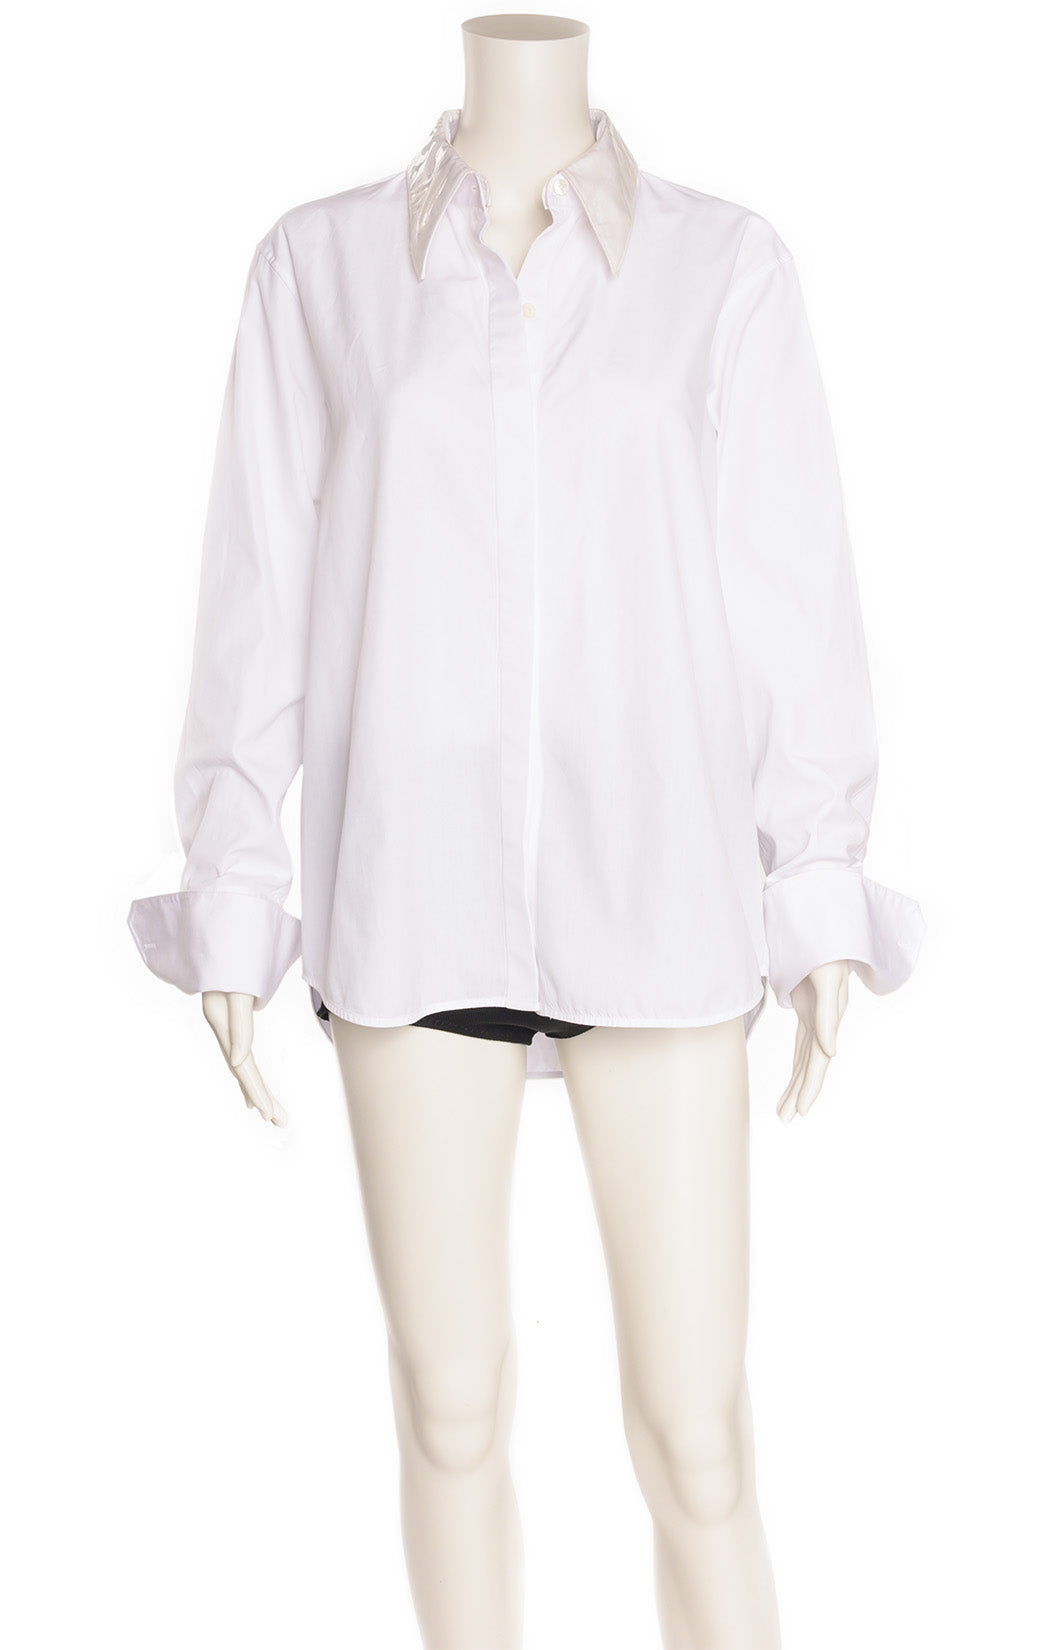 Front view of HELMUT LANG Shirt Size: Medium